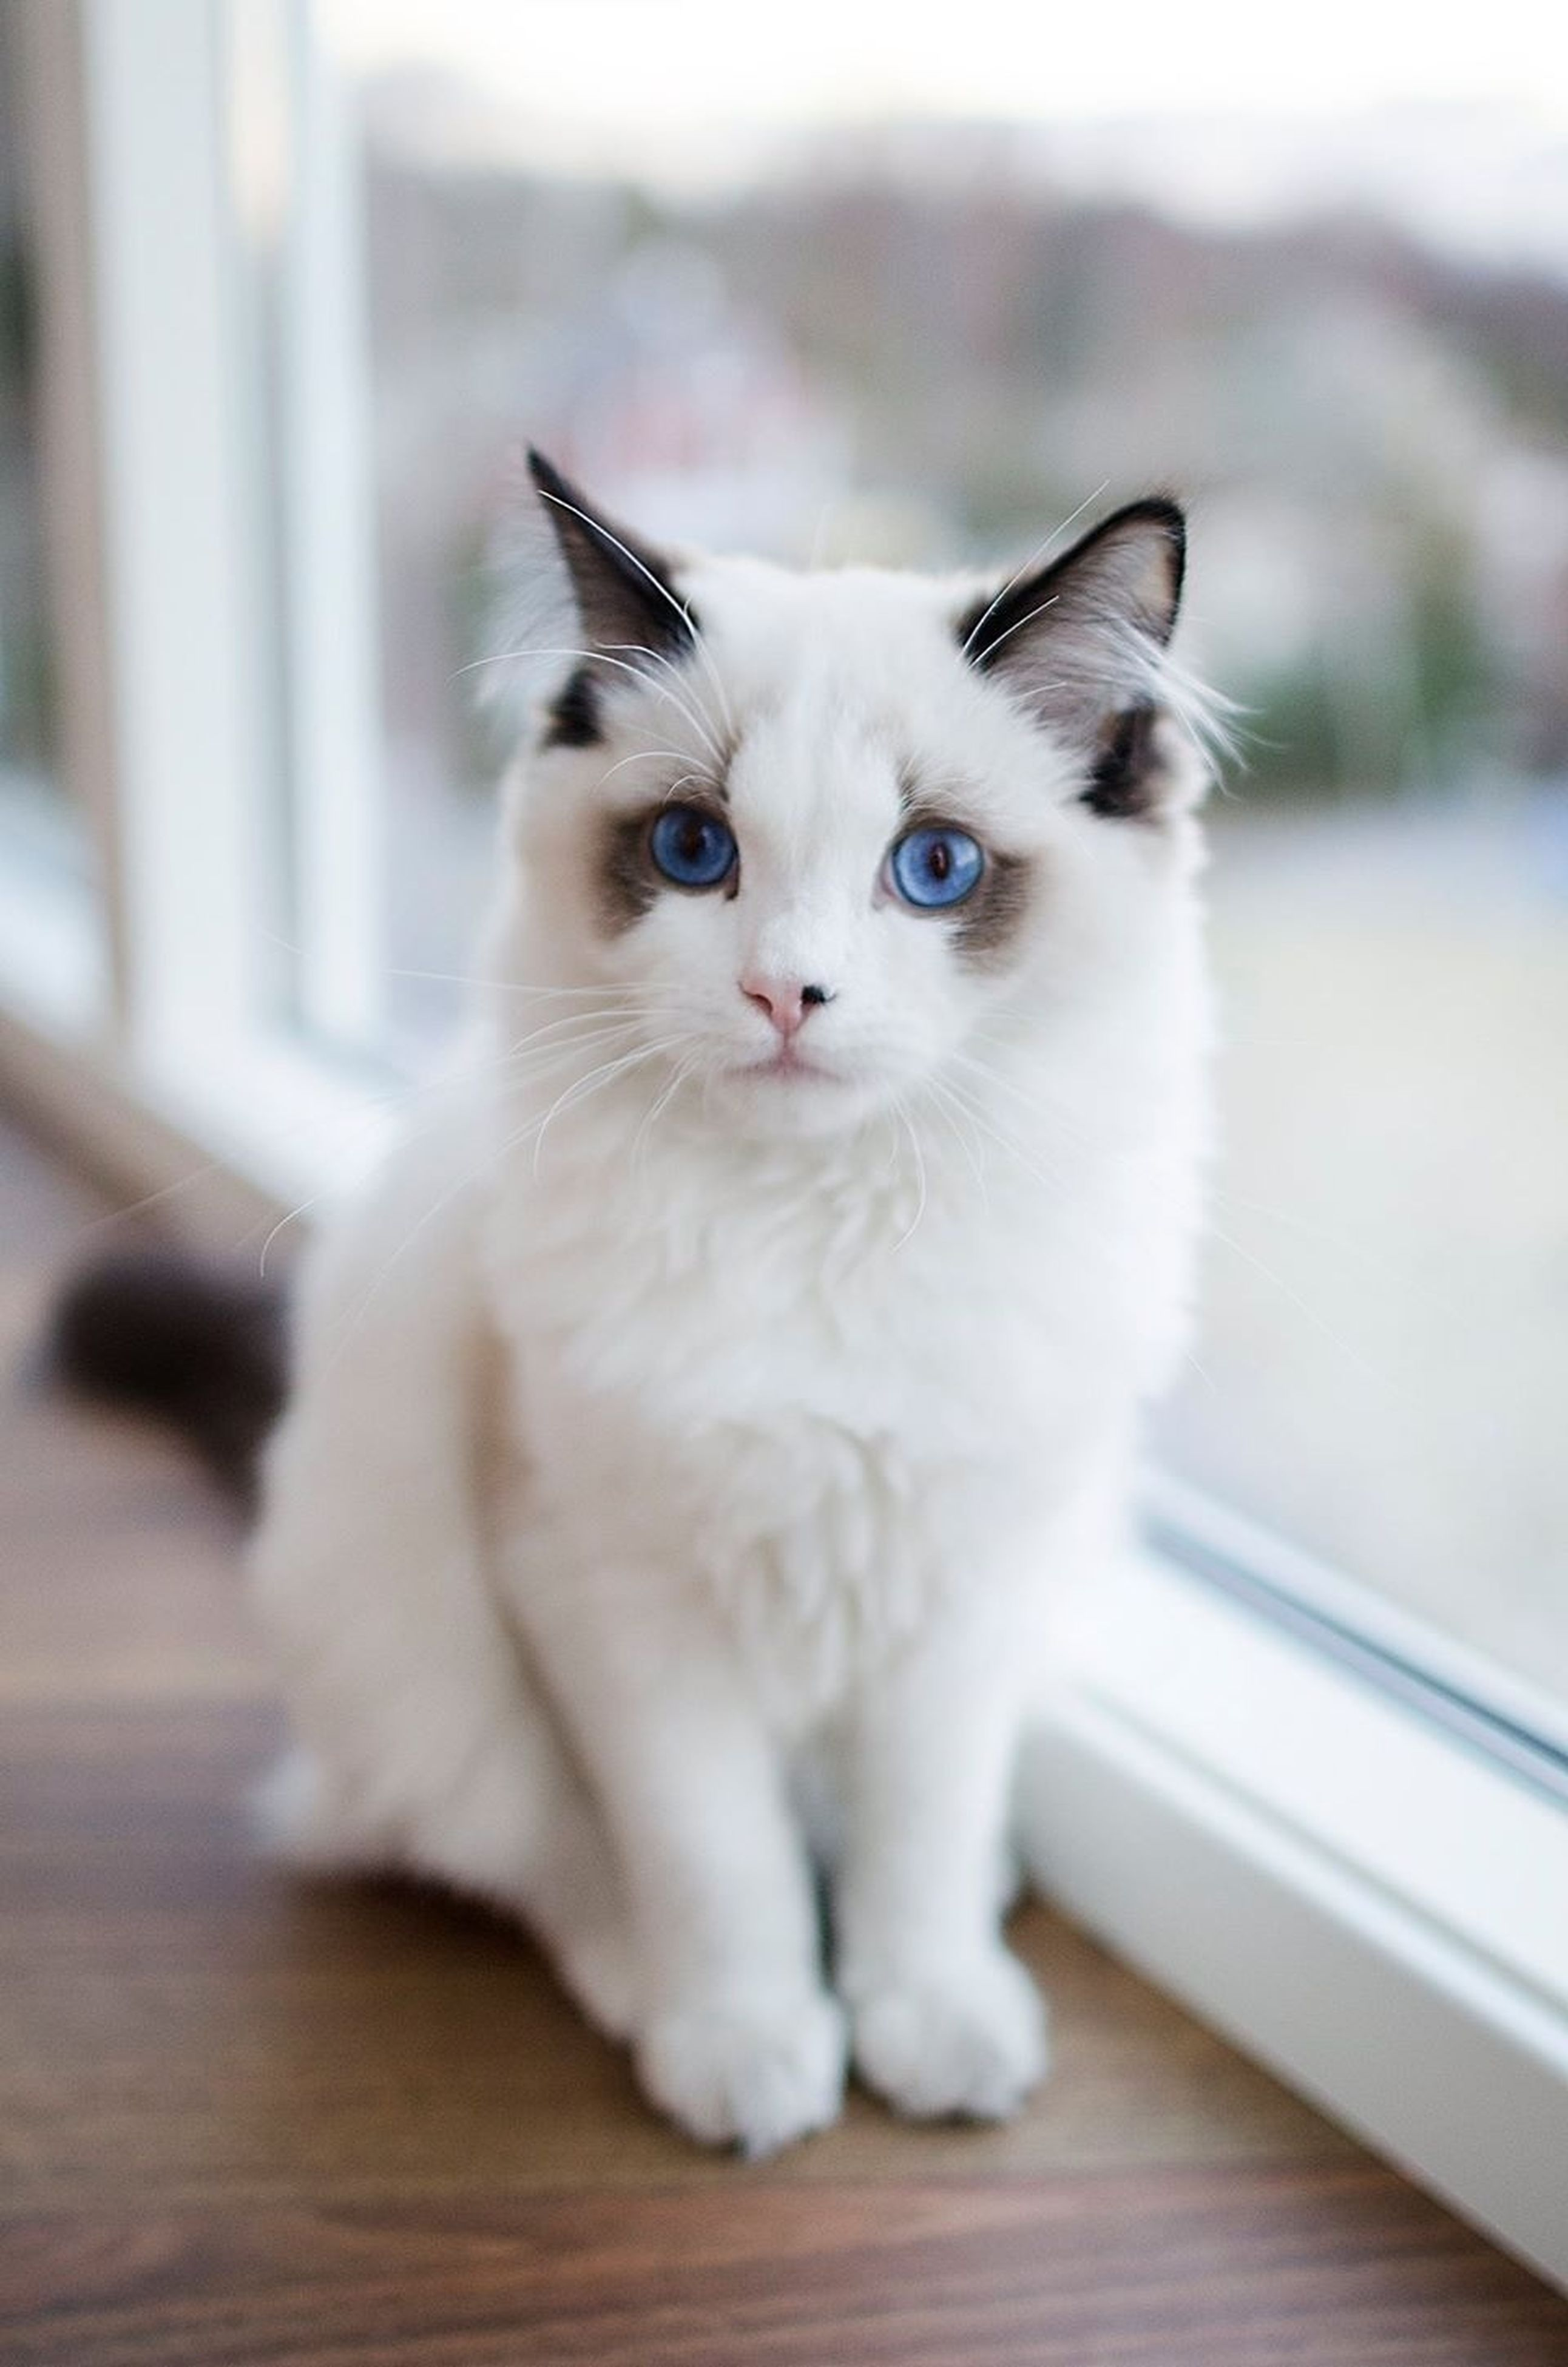 domestic cat, cat, pets, domestic animals, feline, animal themes, one animal, mammal, whisker, indoors, portrait, looking at camera, sitting, relaxation, close-up, home interior, focus on foreground, white color, alertness